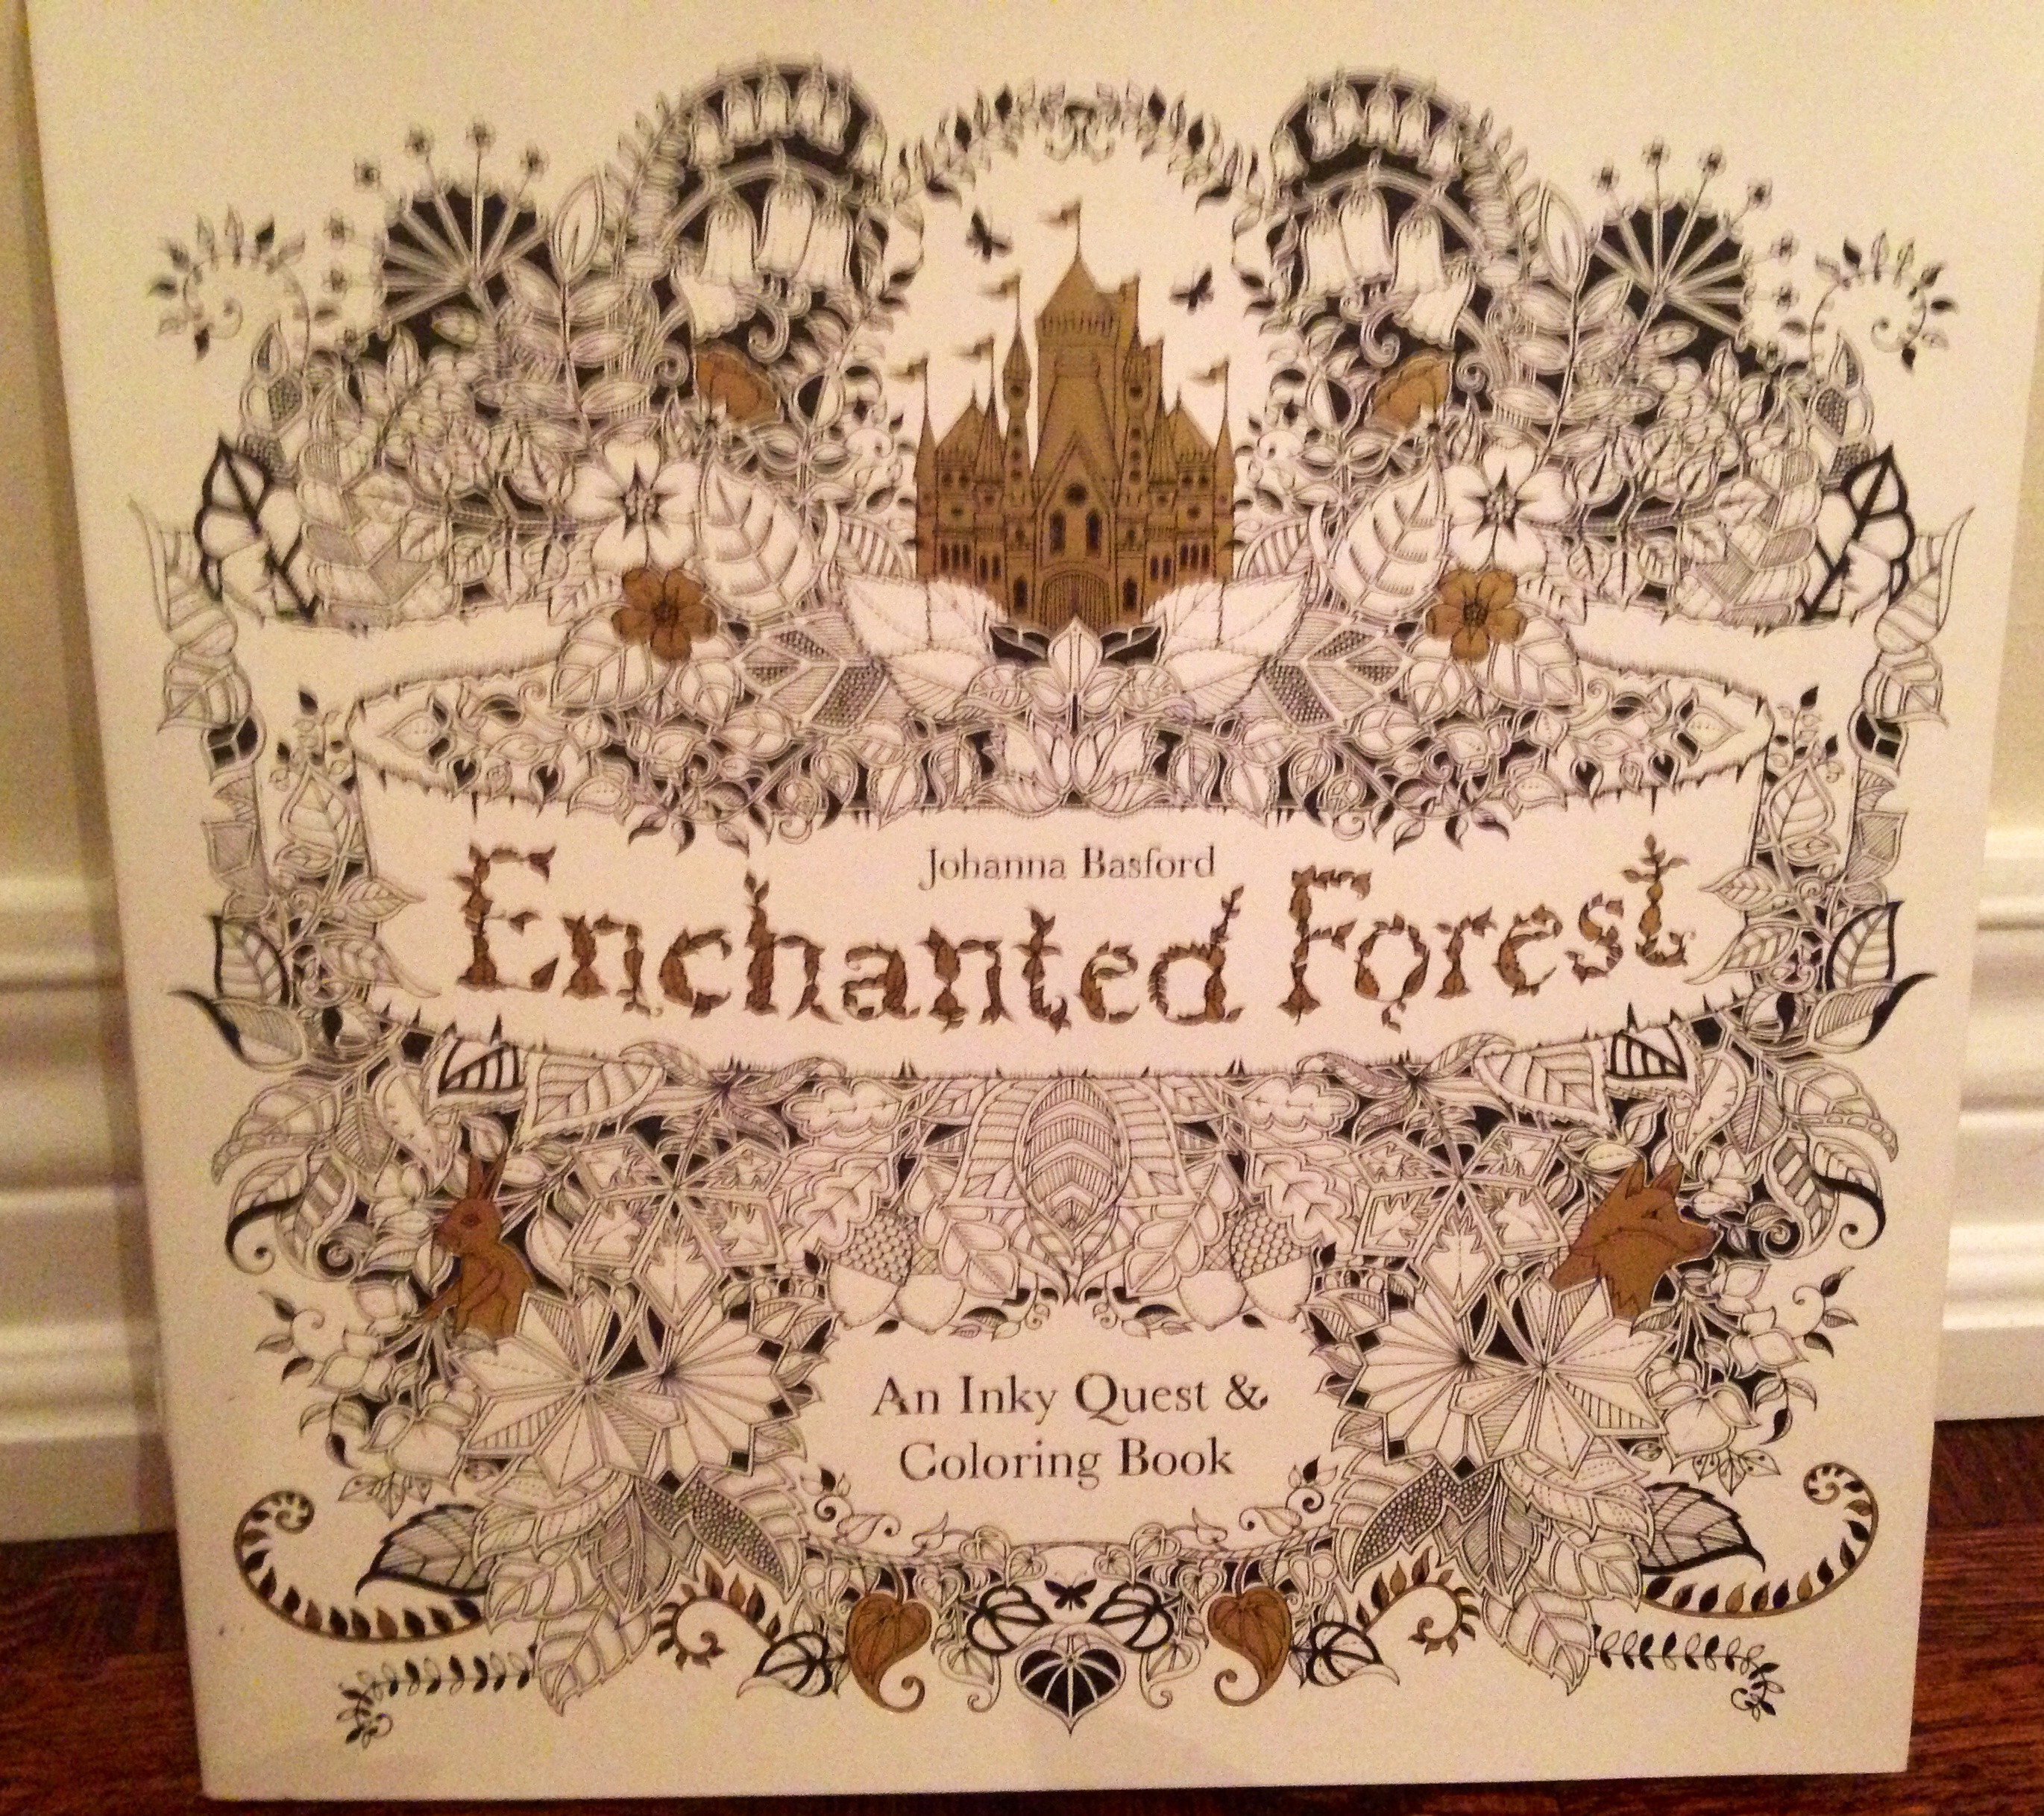 The Author Johanna Basford Also Created 2 Other Equally Beautiful Coloring Books Lost Ocean And Secret Garden Artwork In These Is Exquisite